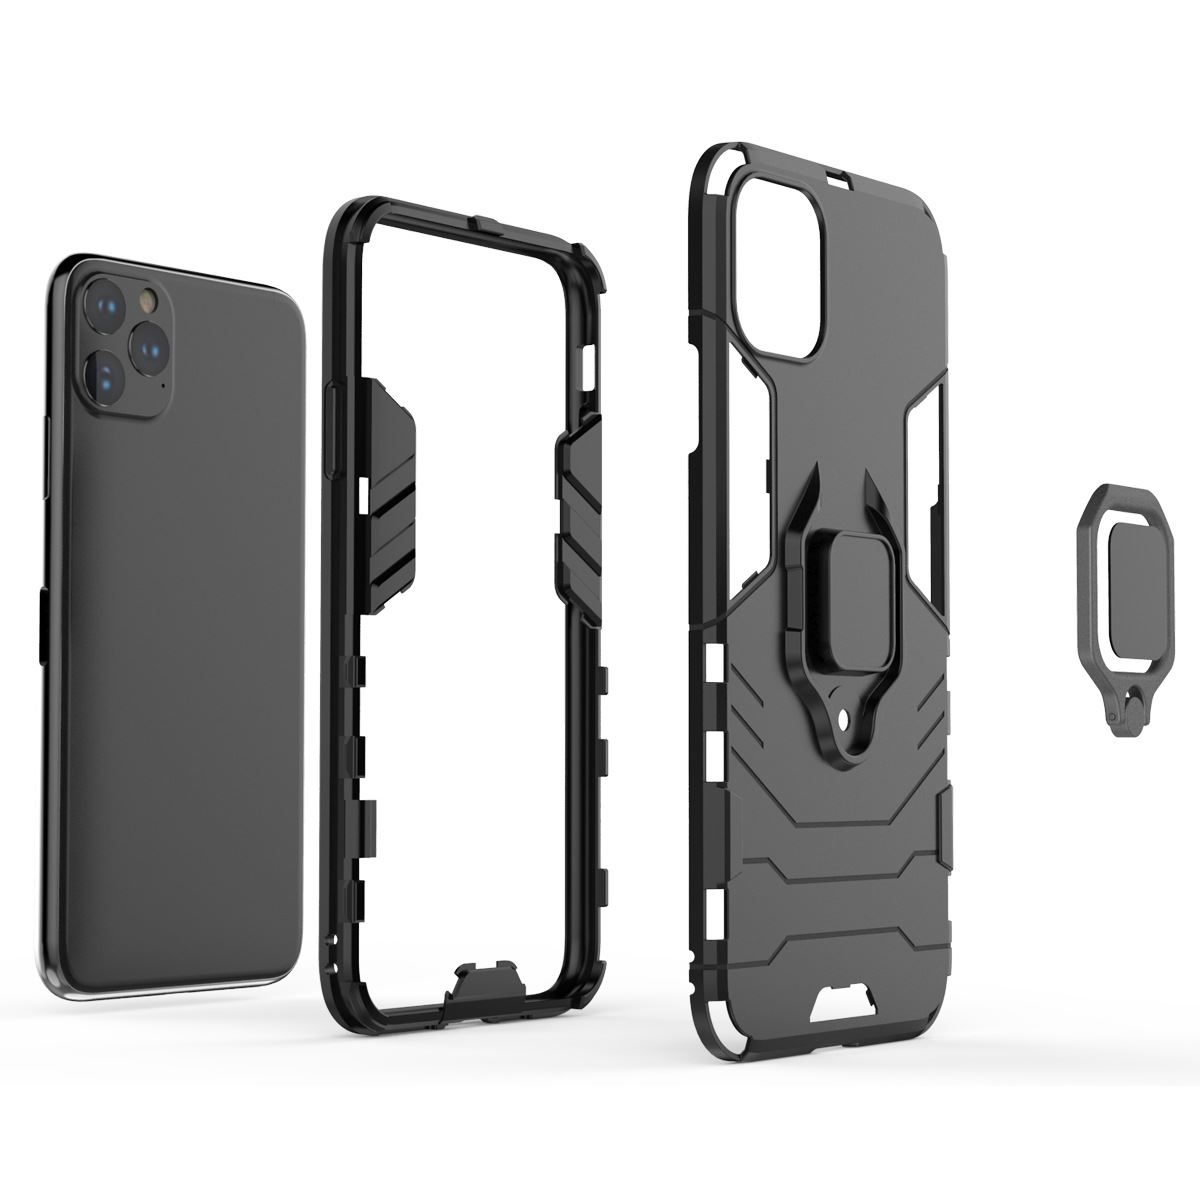 Hybrid-Pc-Case-Cover-For-Apple-iPhone-11-Pro-Max-X-6-7-8-Se-With-Ring-Holder thumbnail 6